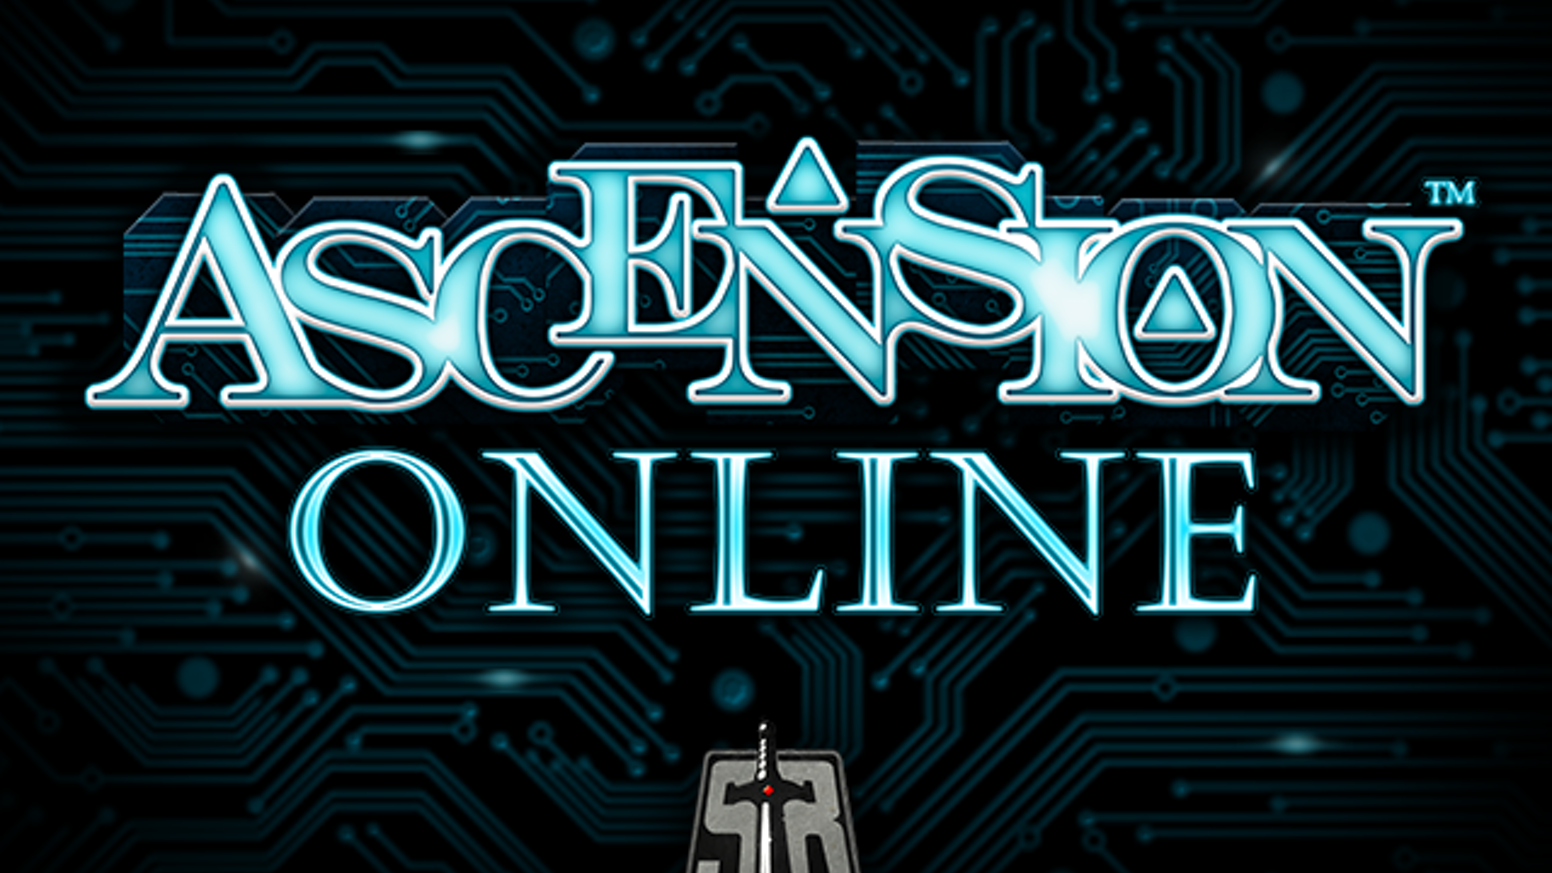 Ascension Online by Stone Blade Entertainment — Kickstarter